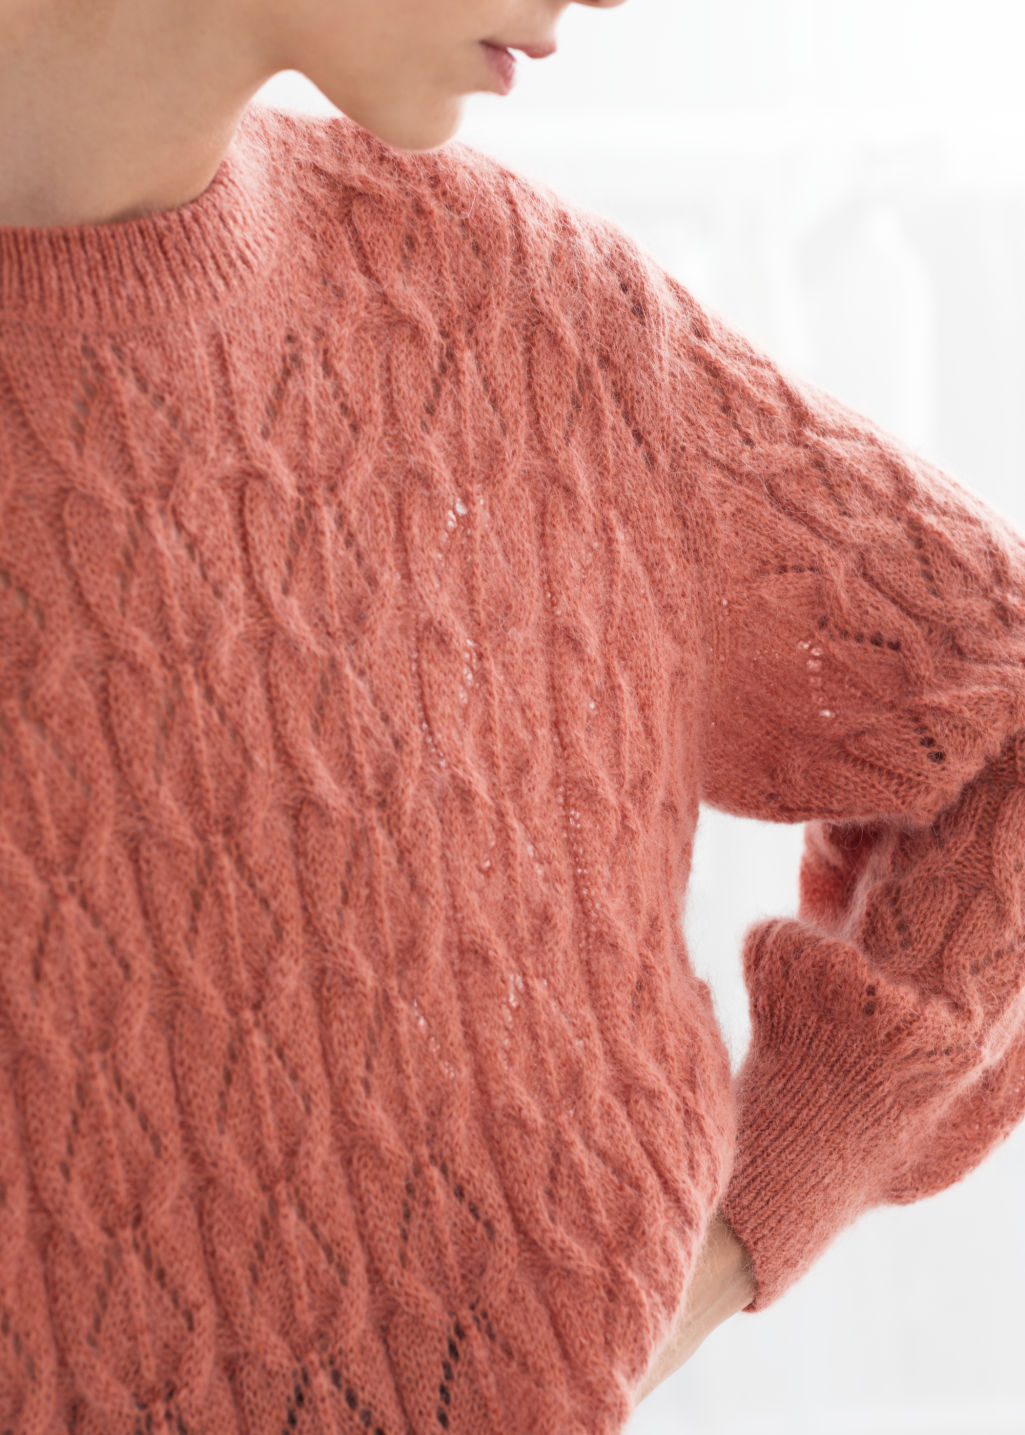 d9347e842 Oversized Eyelet Knit Sweater - Salmon - Sweaters -   Other Stories